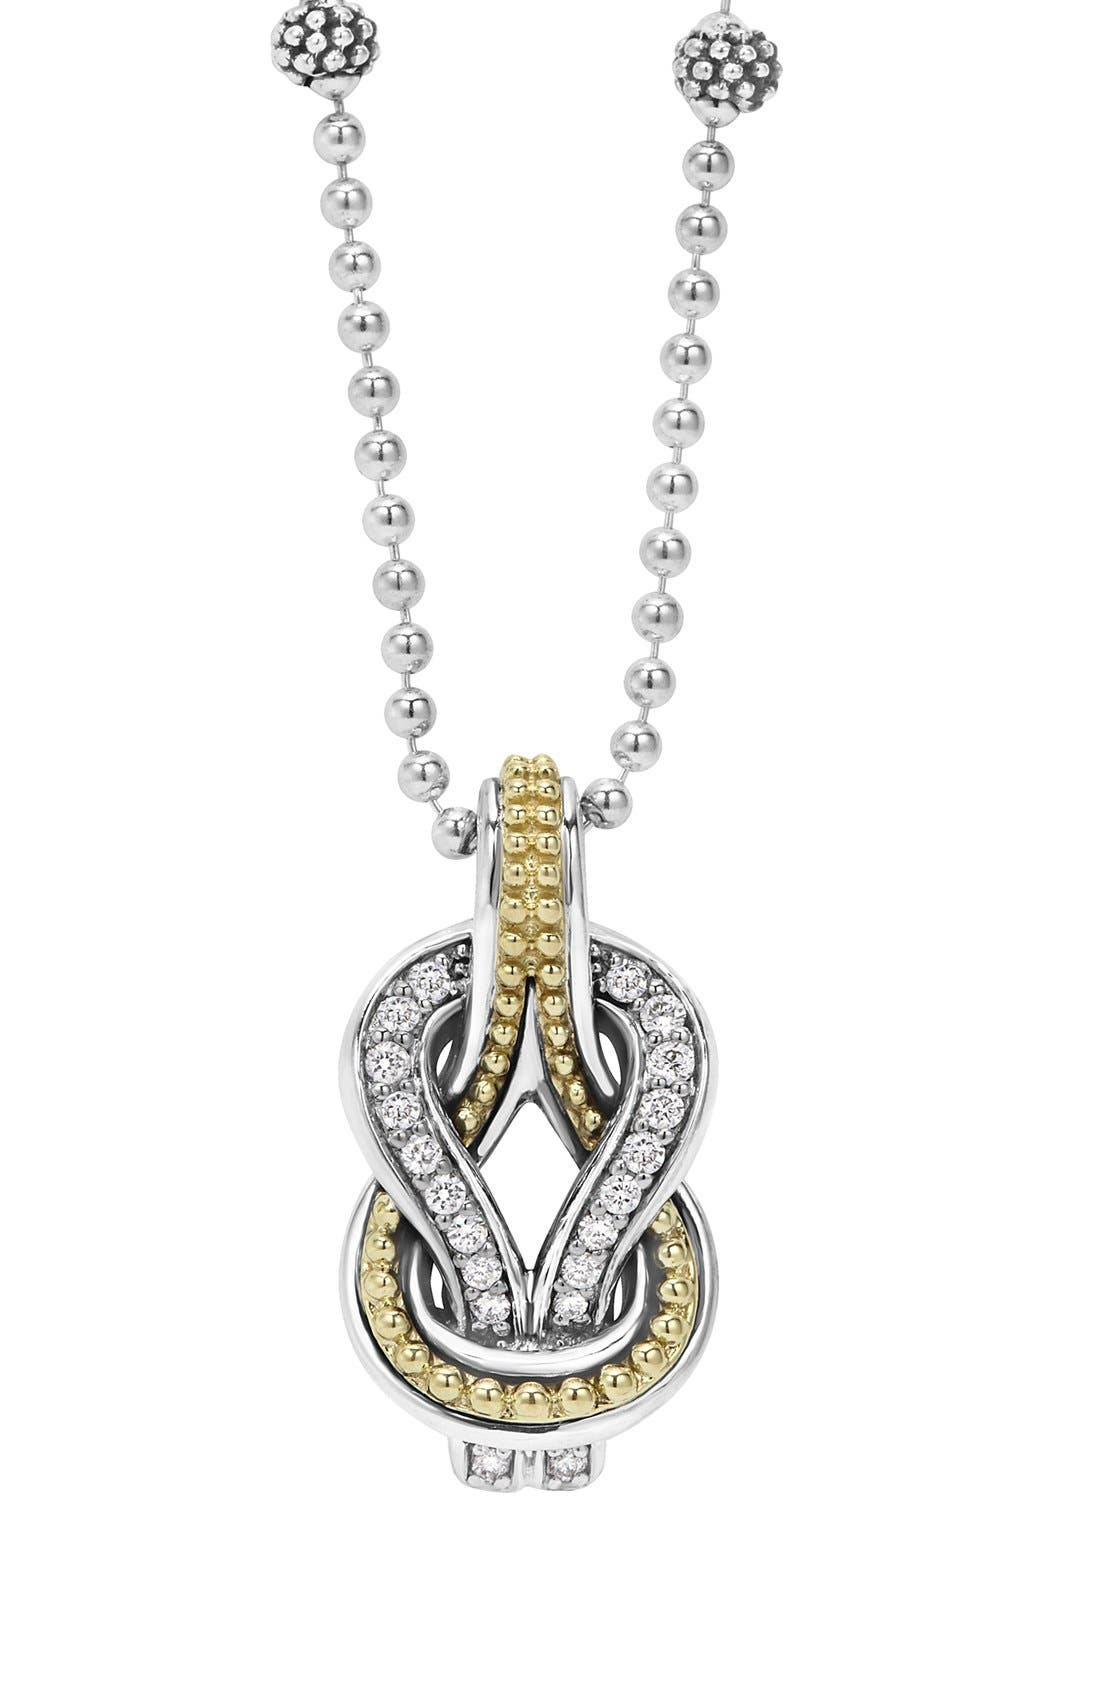 Main Image - LAGOS 'Newport' Diamond Knot Pendant Necklace